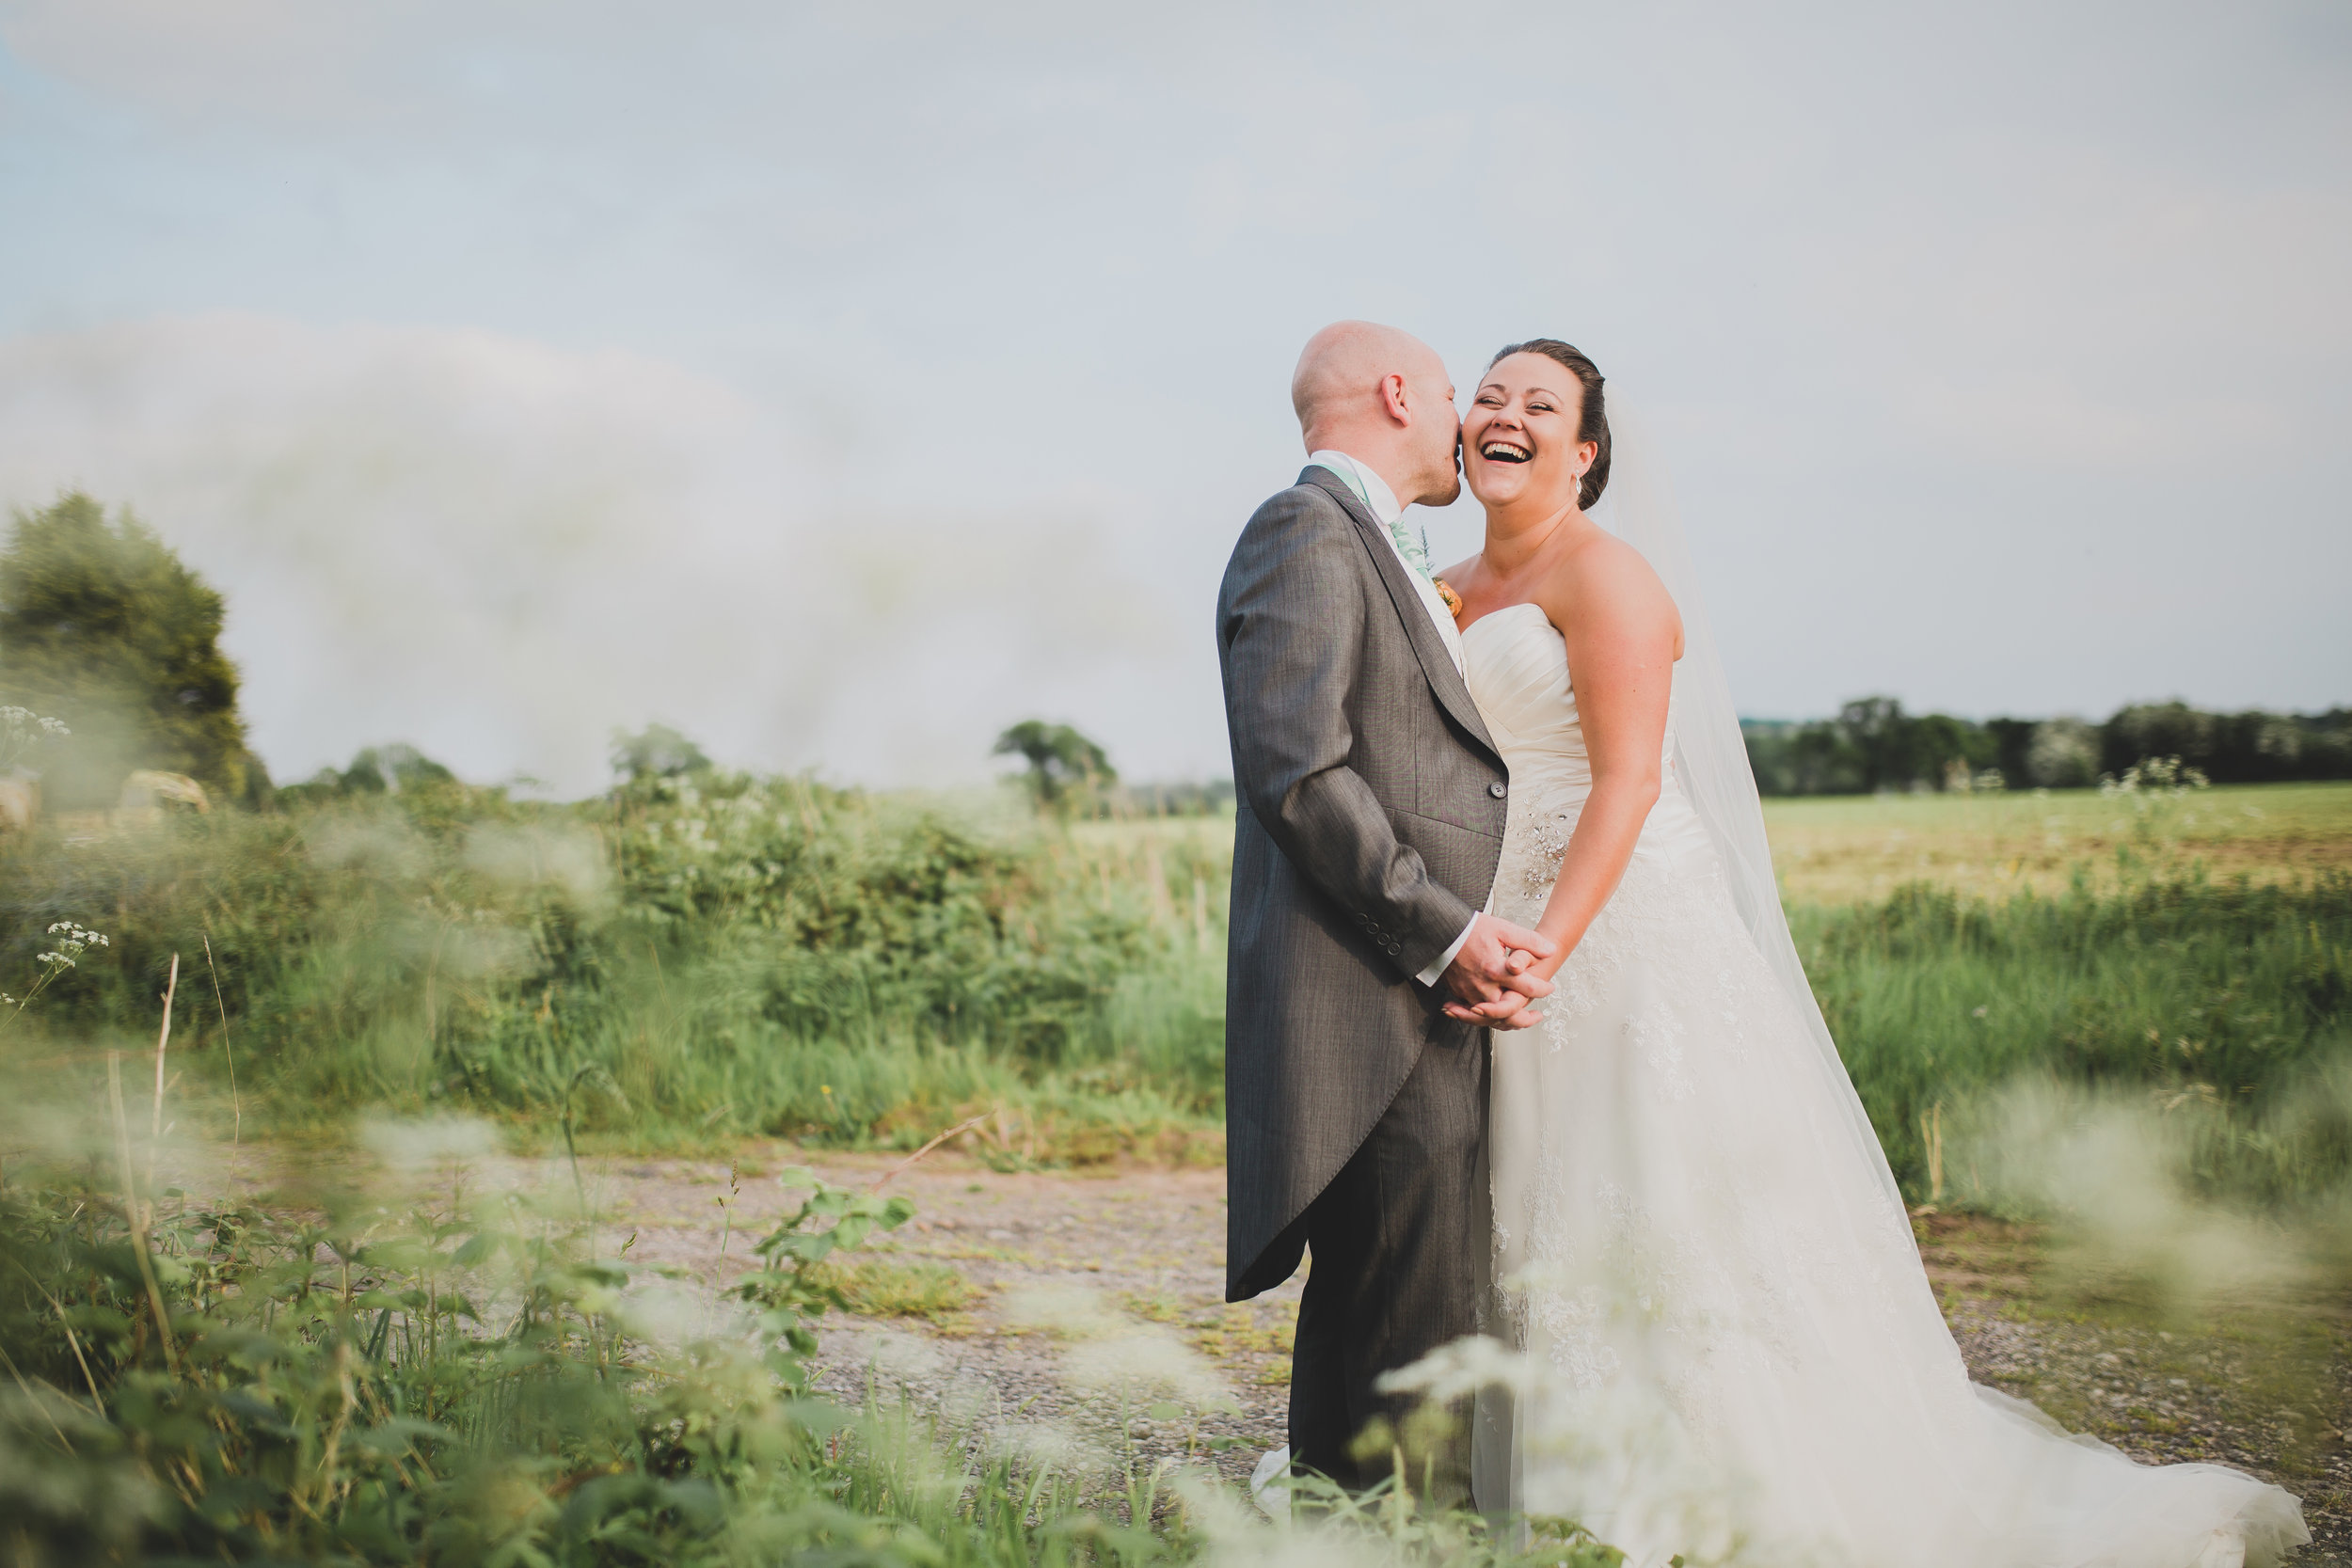 fun and relaxed wedding pictures at Beeston Manor